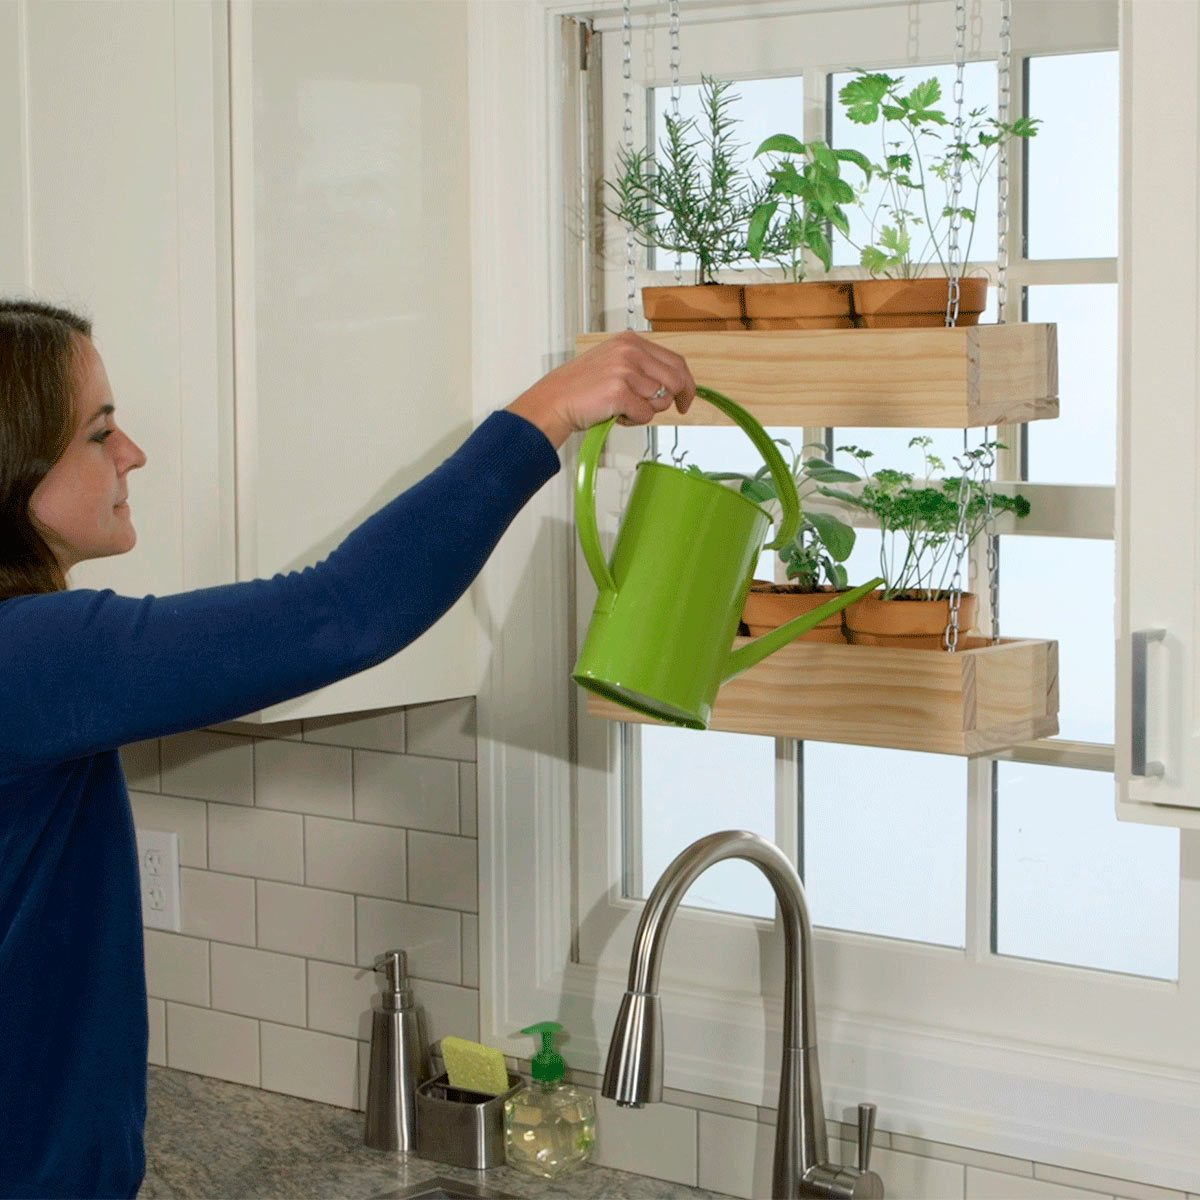 How To Build A Hanging Herb Garden The Family Handyman